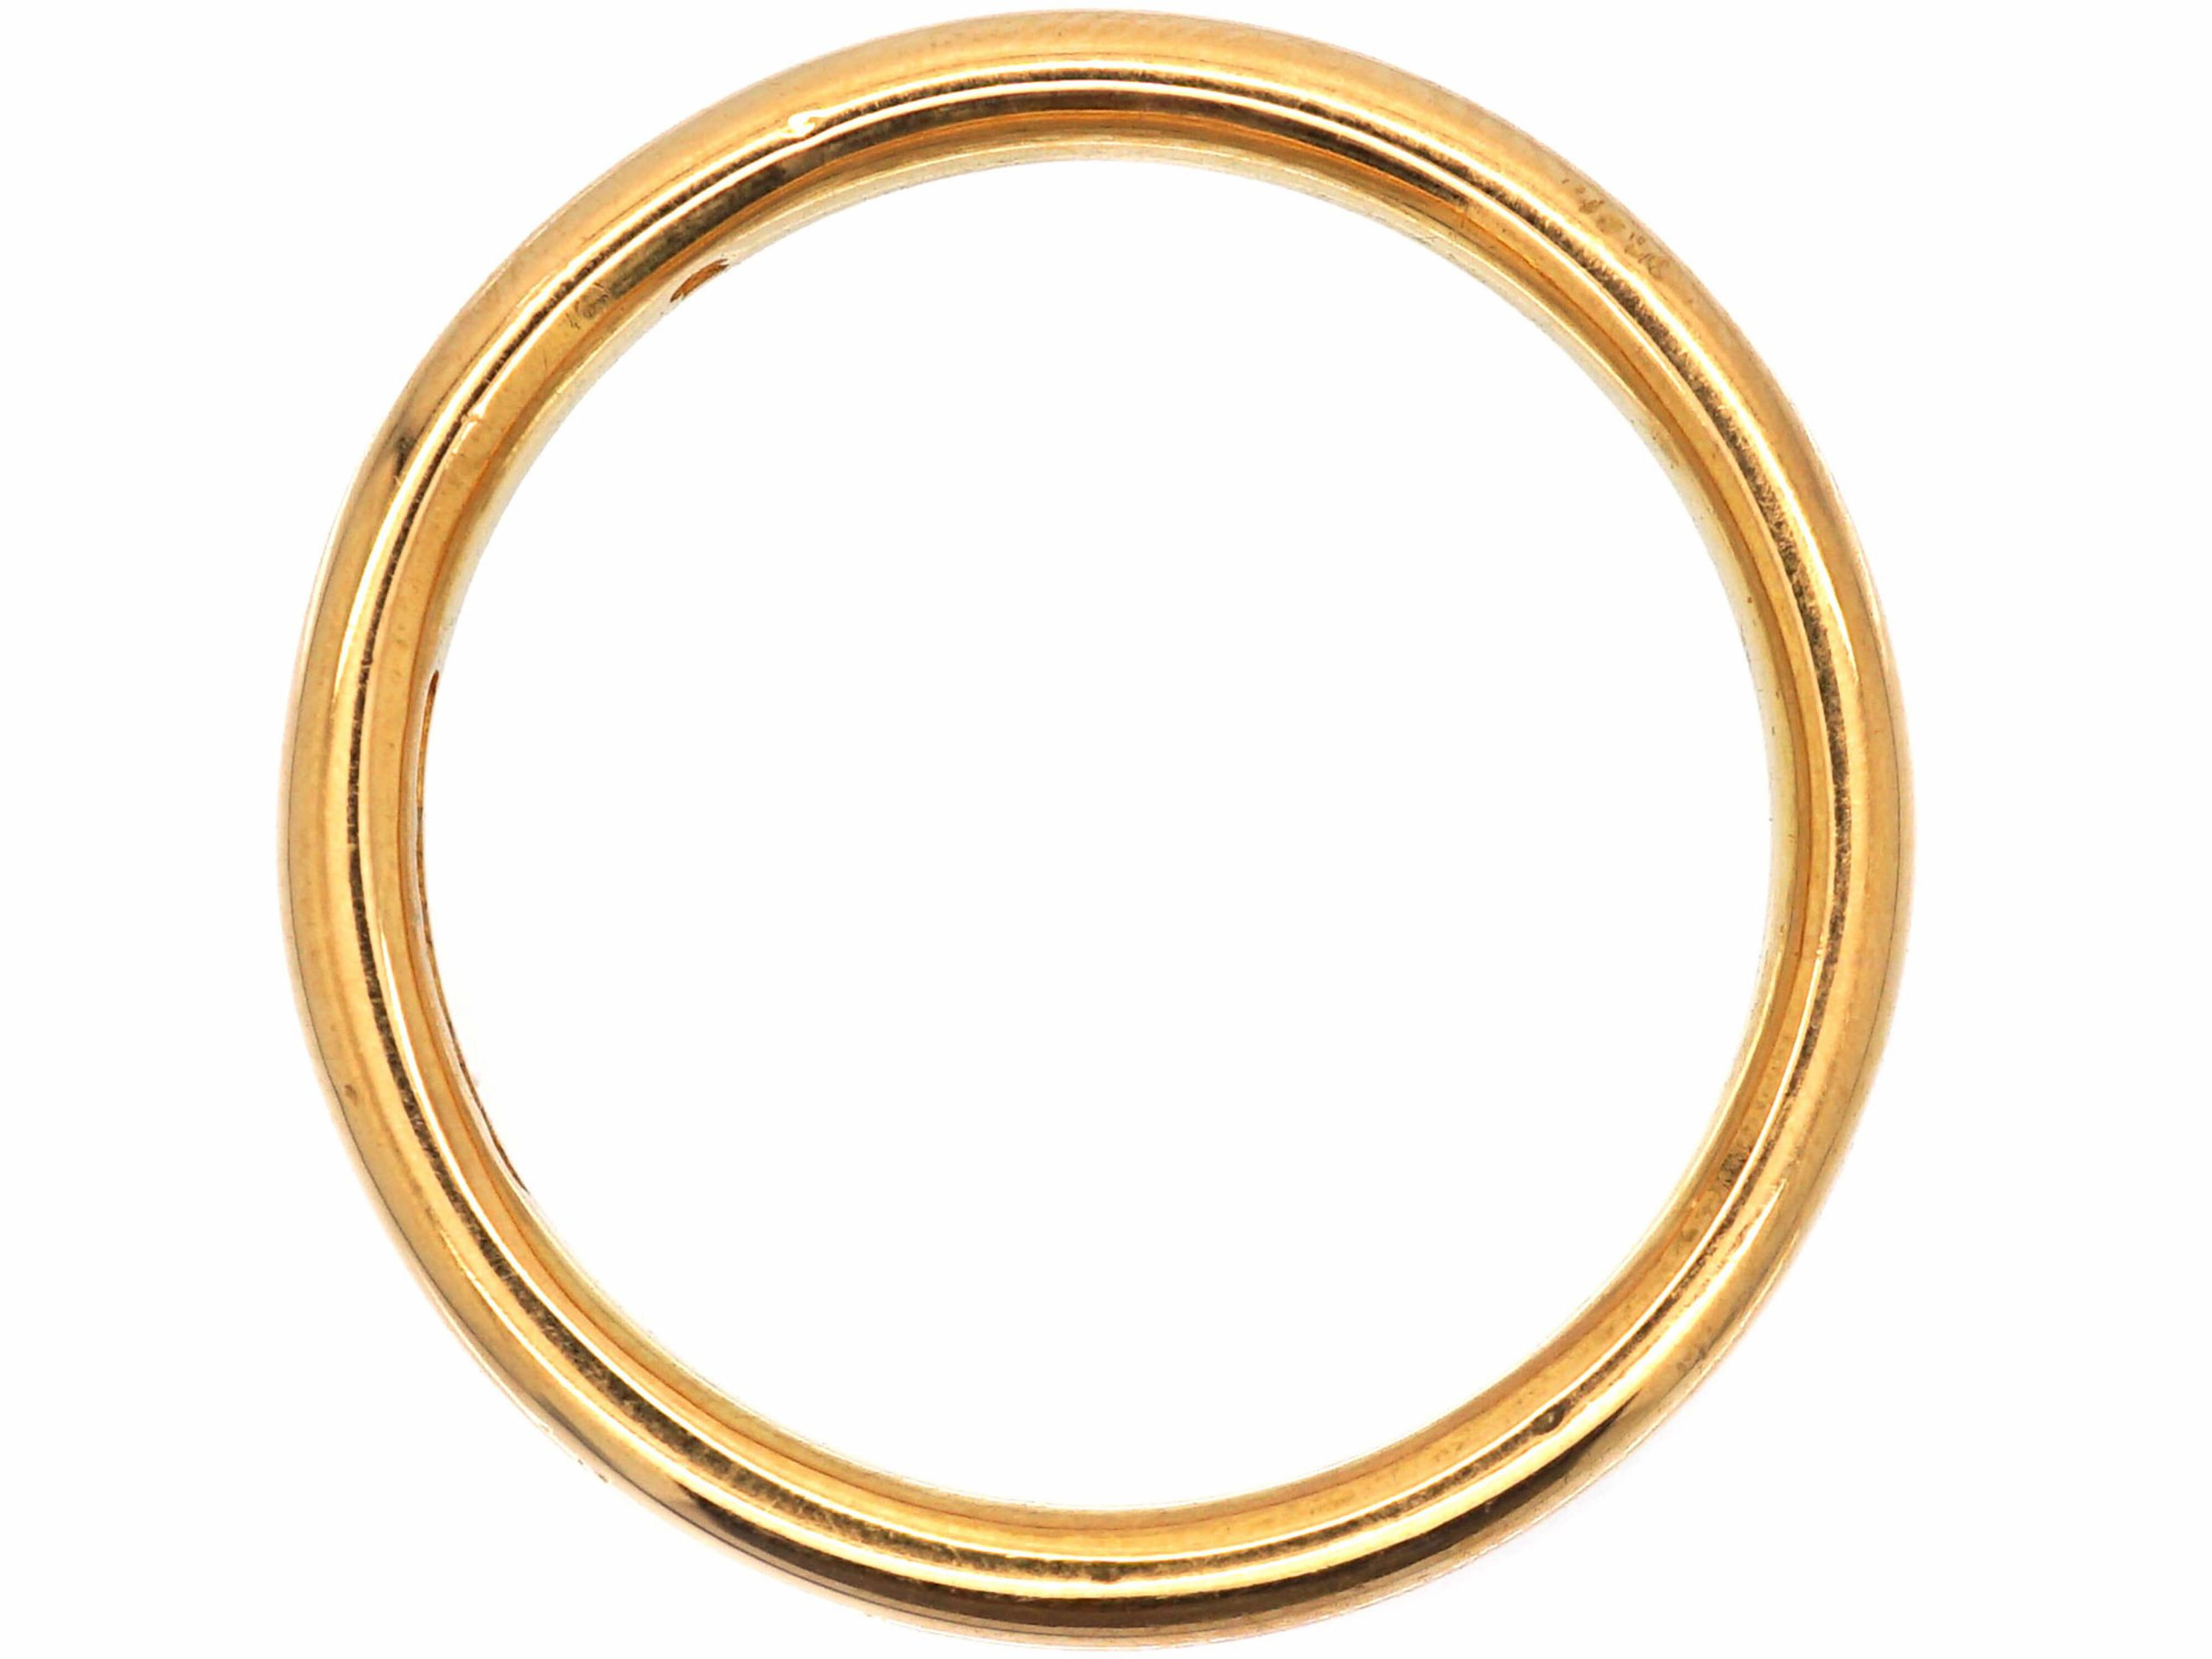 22ct Gold Wedding Ring Assayed in 1951